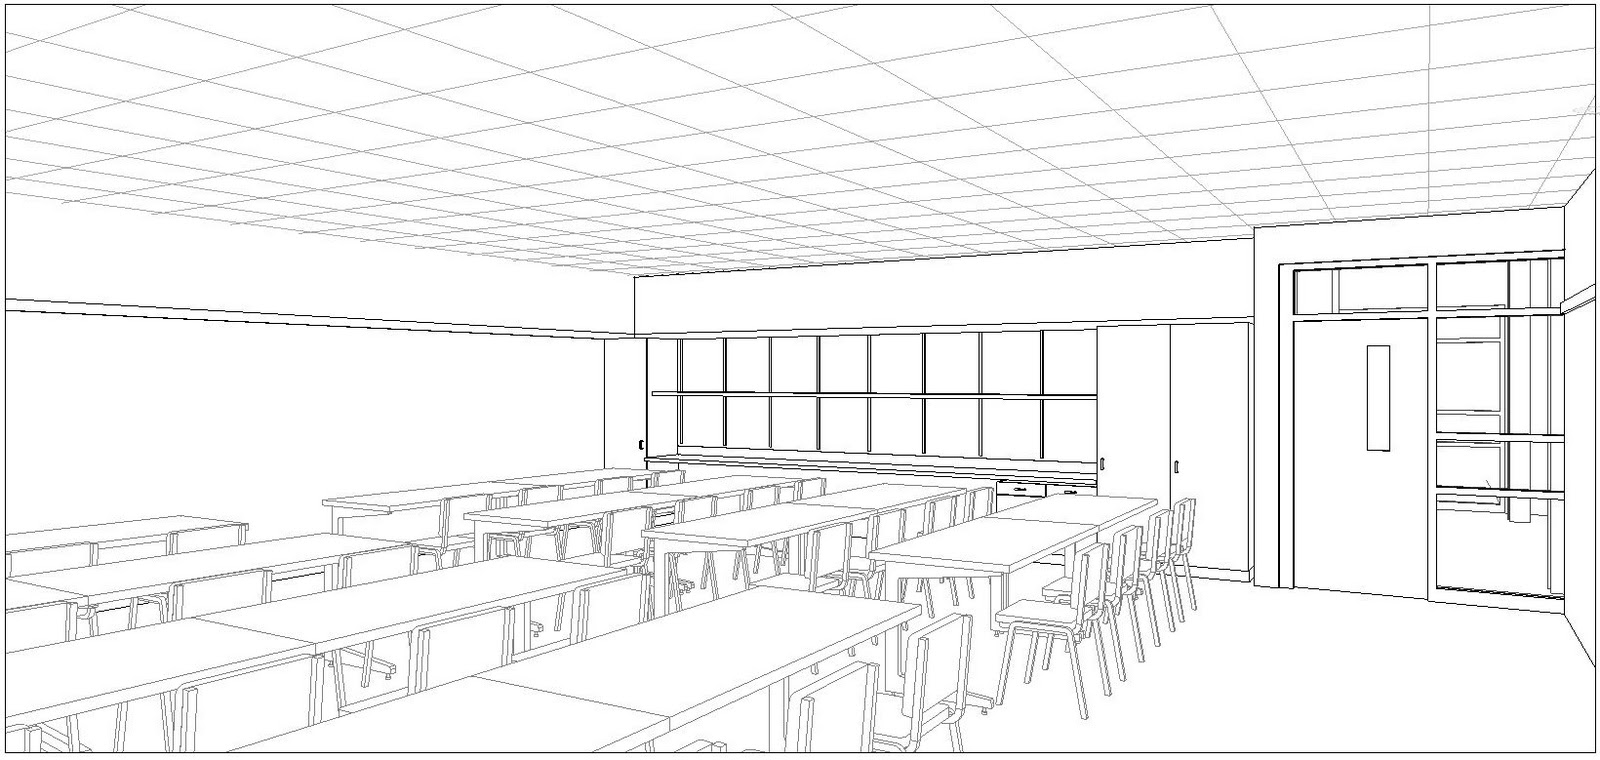 Lake Central High School Room Concepts: General Classrooms